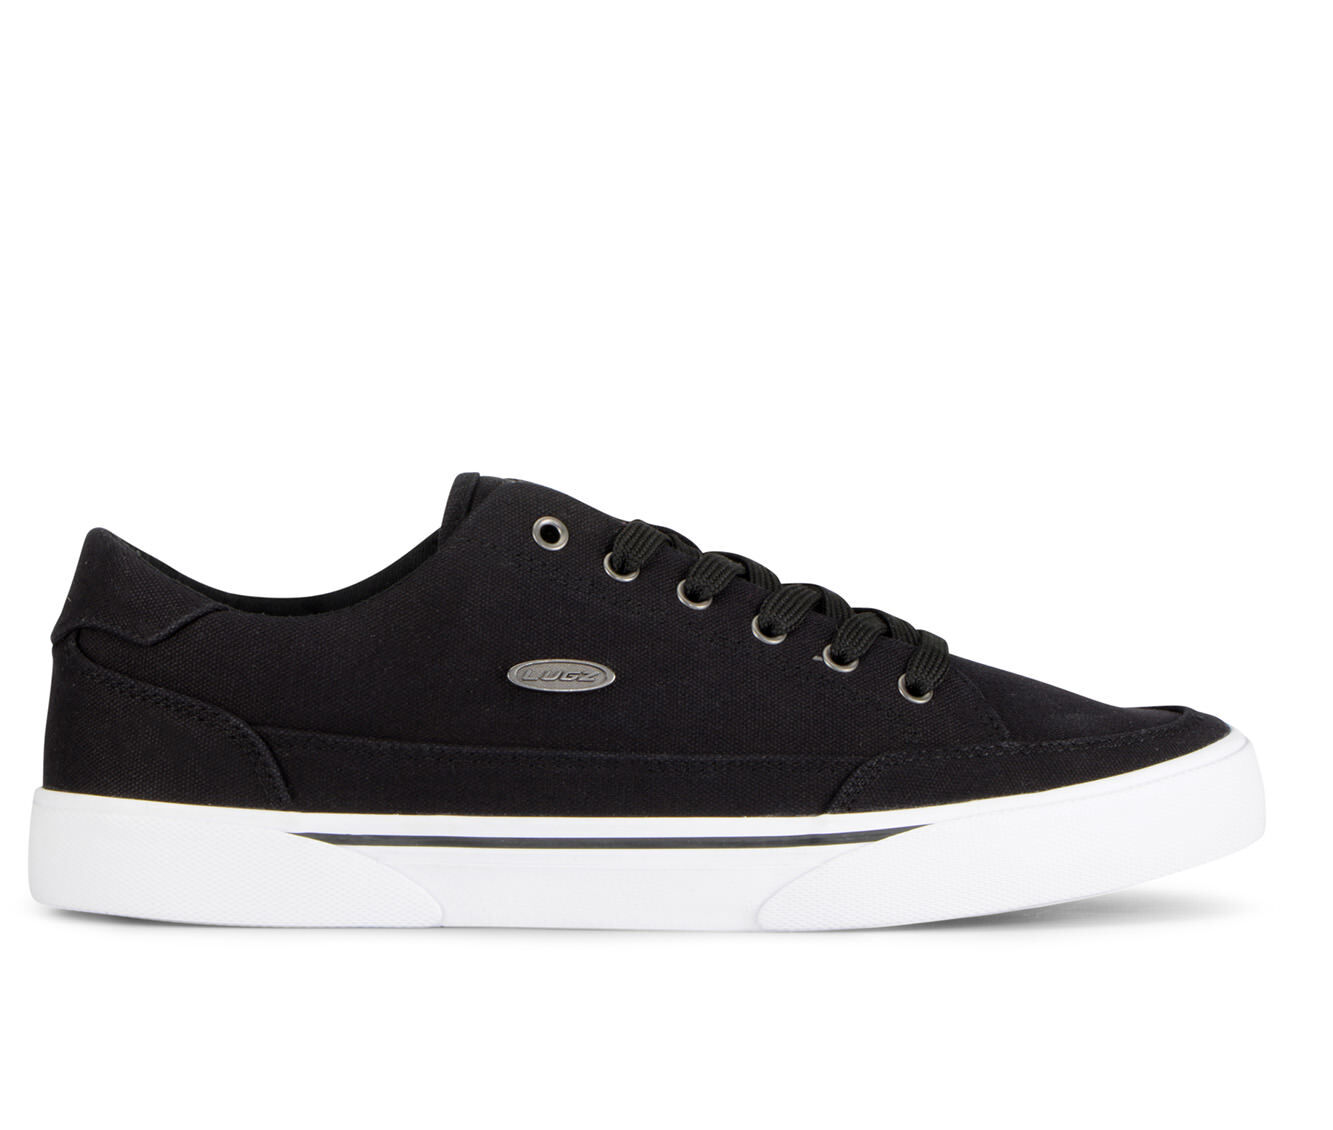 clearance shop Men's Lugz Stockwell Casual Sneakers Black/White